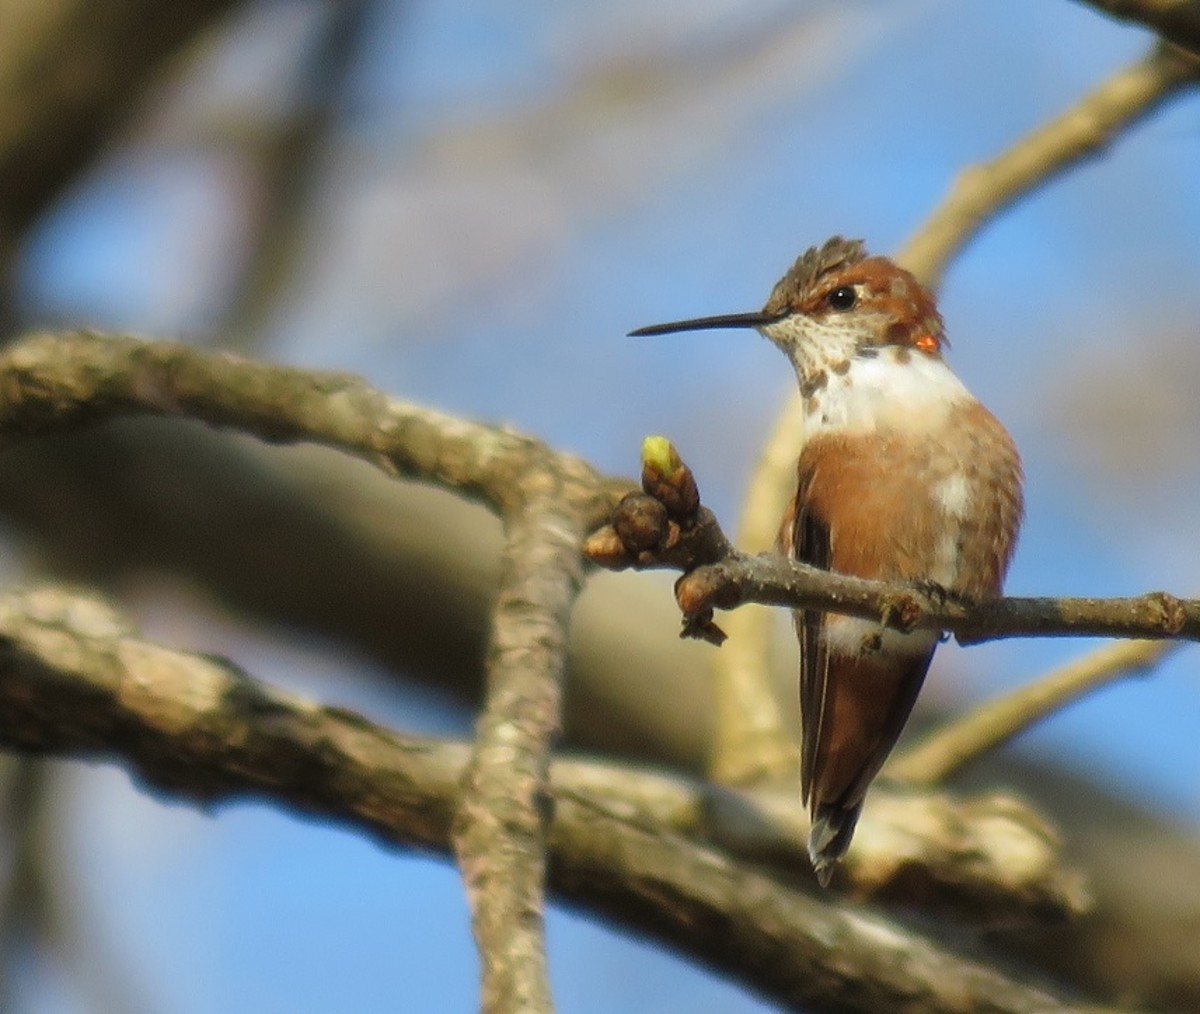 This immature male Rufous spent the winter of 2016-17 in our Covington yard. By the time he left he had molted into his adult plumage.